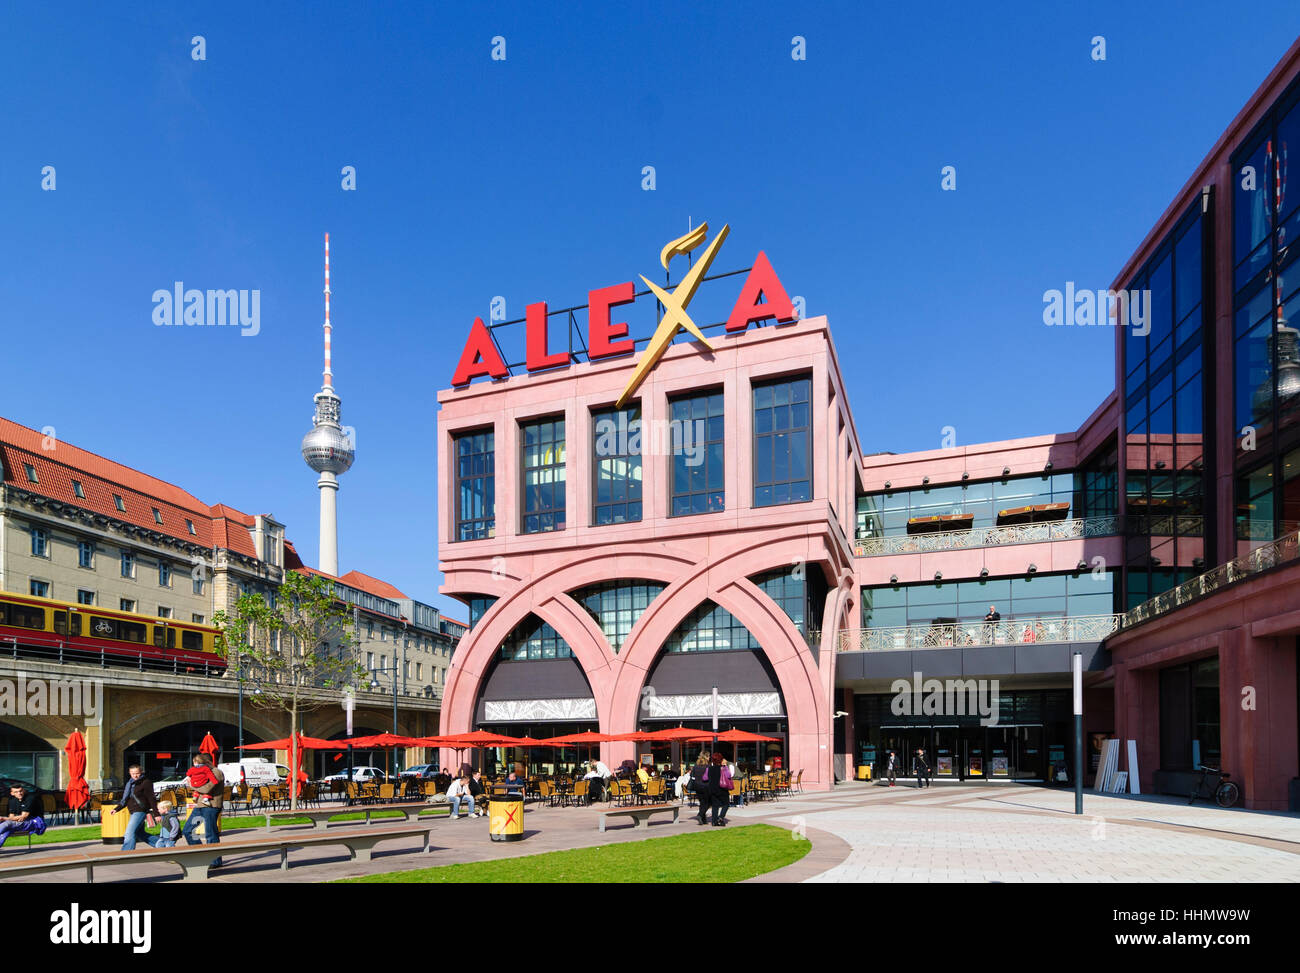 alexa shopping mall berlin germany stockfotos alexa shopping mall berlin germany bilder alamy. Black Bedroom Furniture Sets. Home Design Ideas